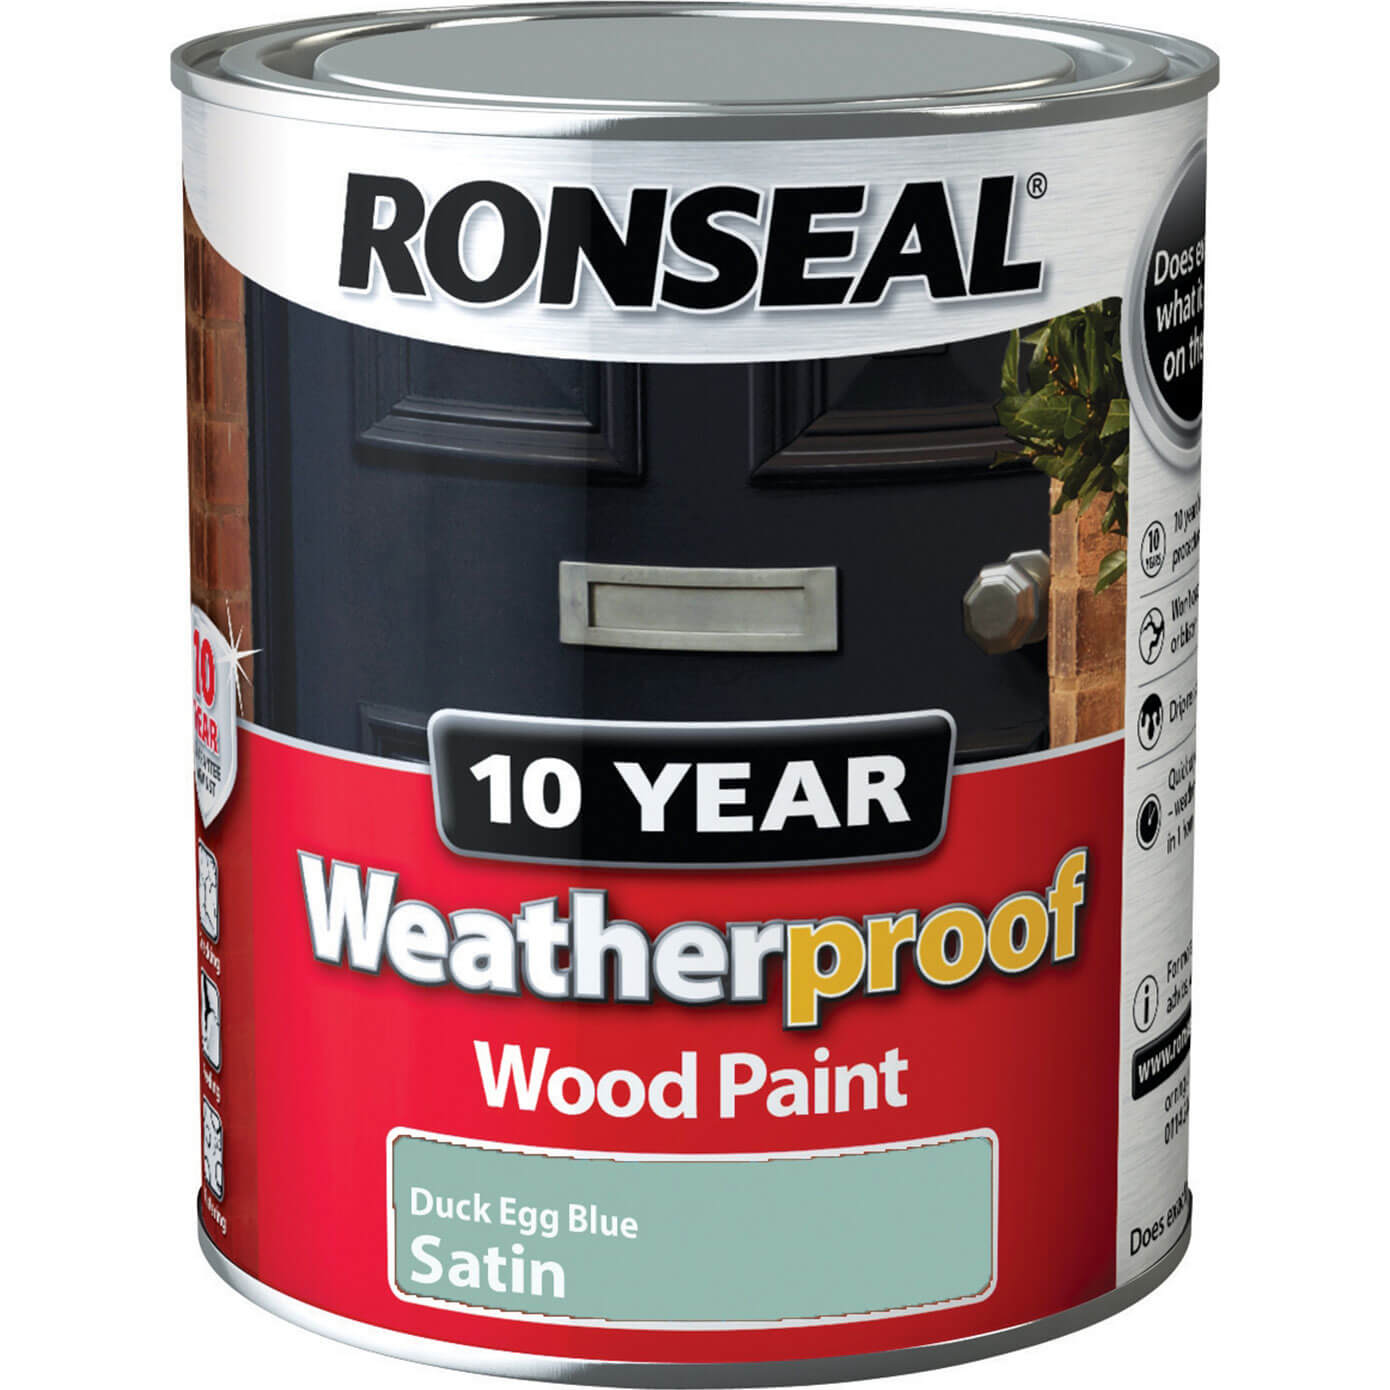 Ronseal Weatherproof 10 Year Exterior Satin Wood Paint Duck Egg Blue 750ml